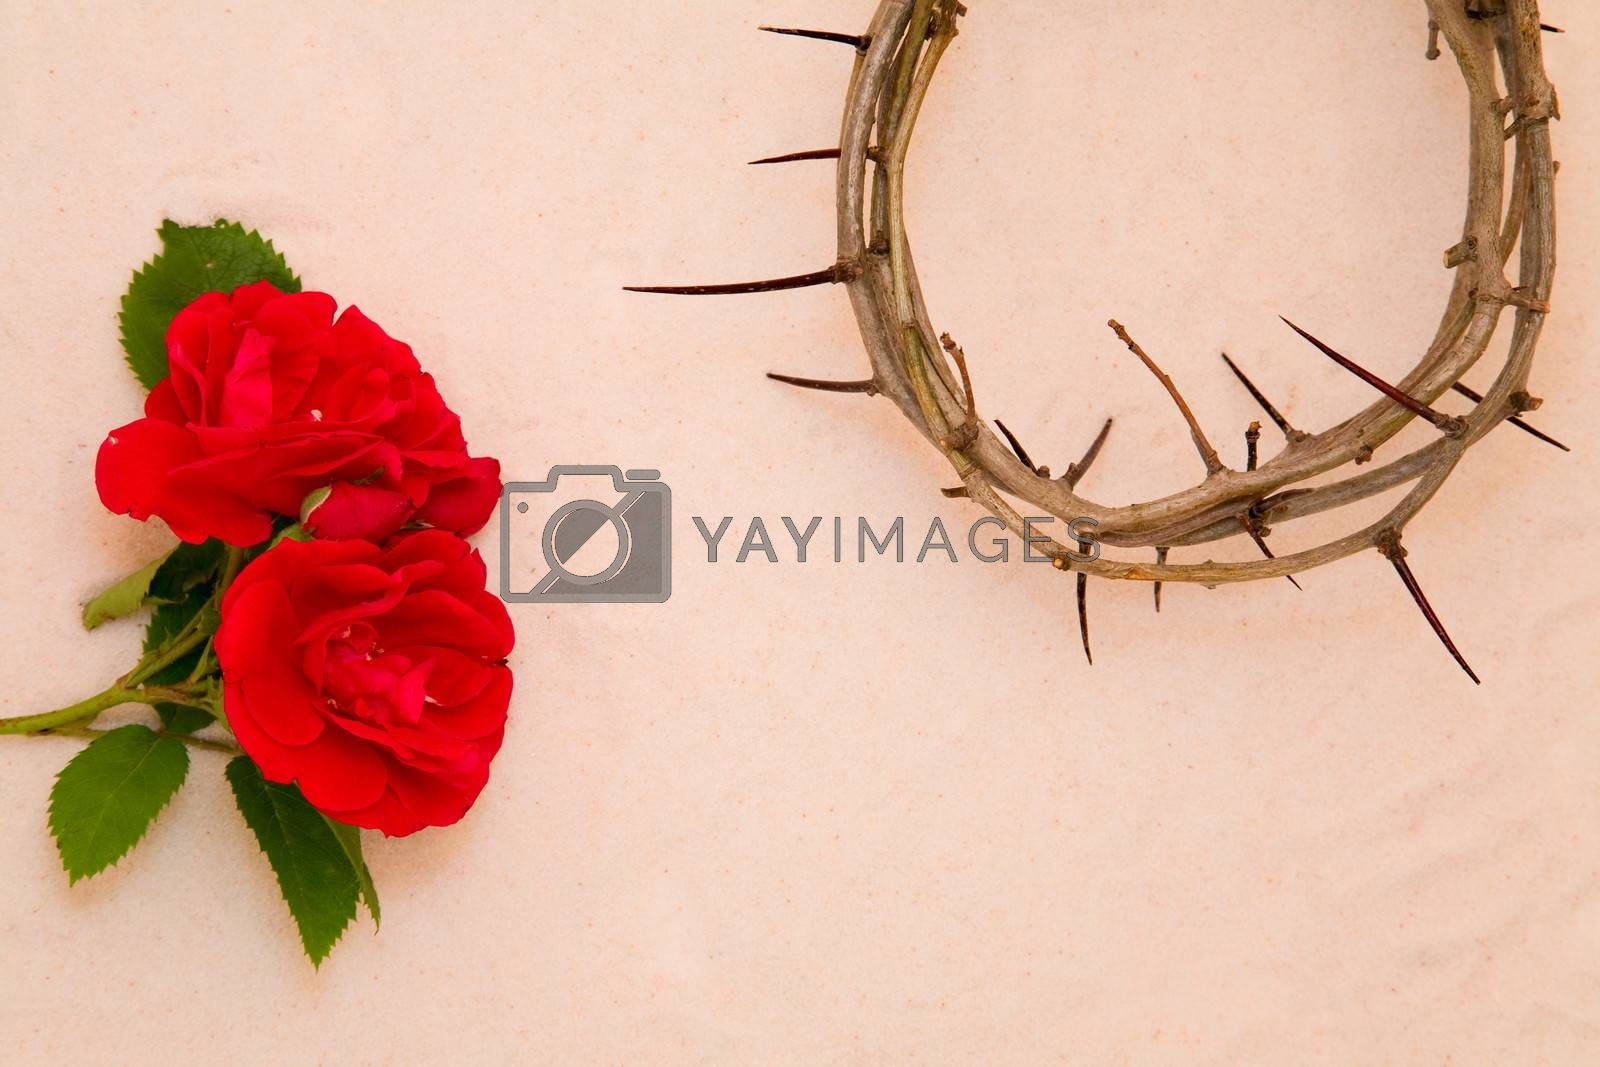 Crown of Thorns and red rose on sand background